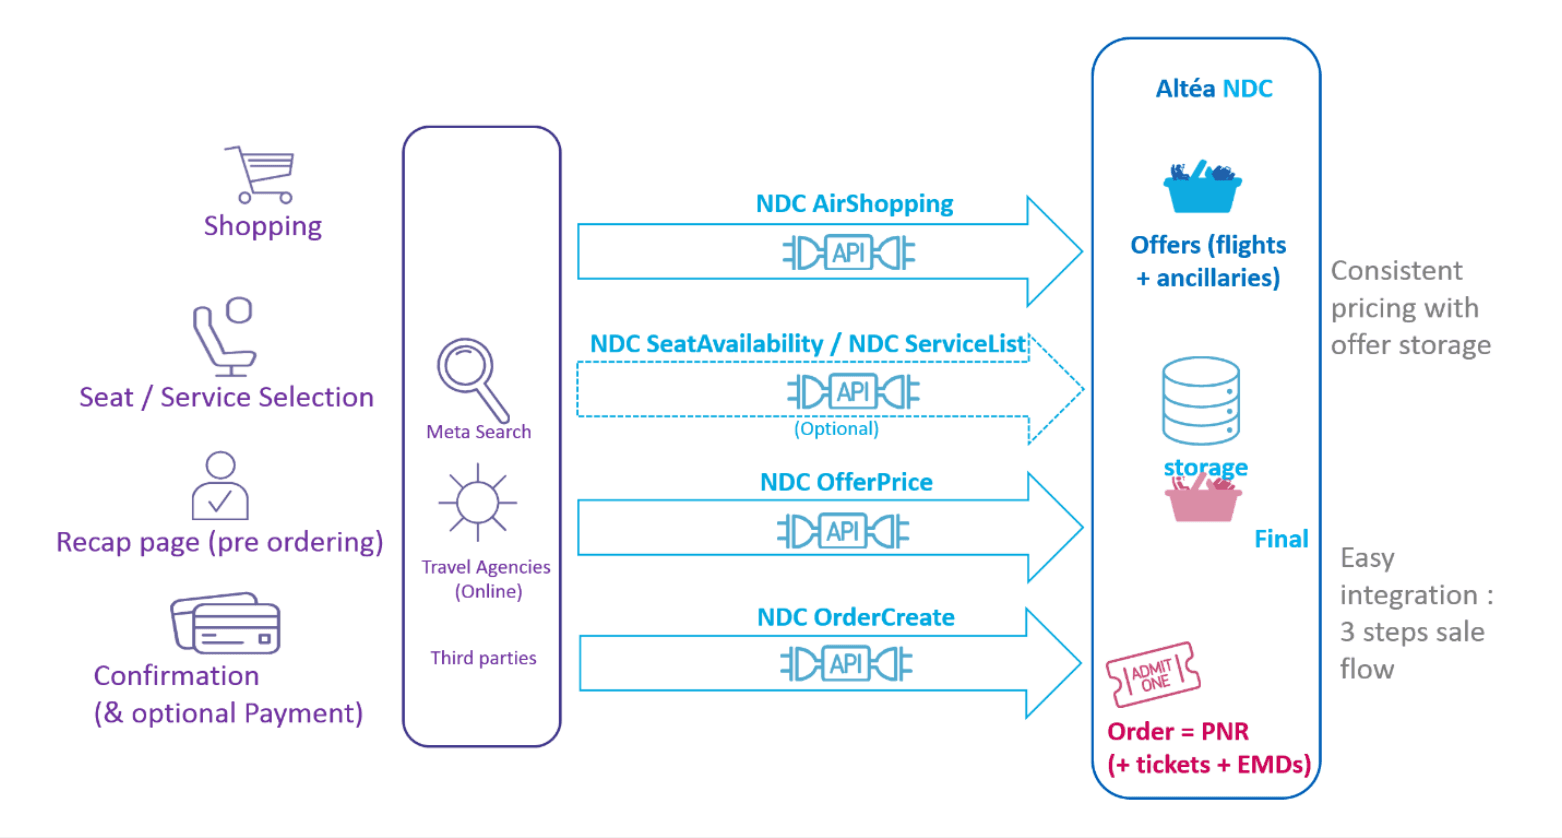 A shopping to booking flow via Amadeus Altéa NDC